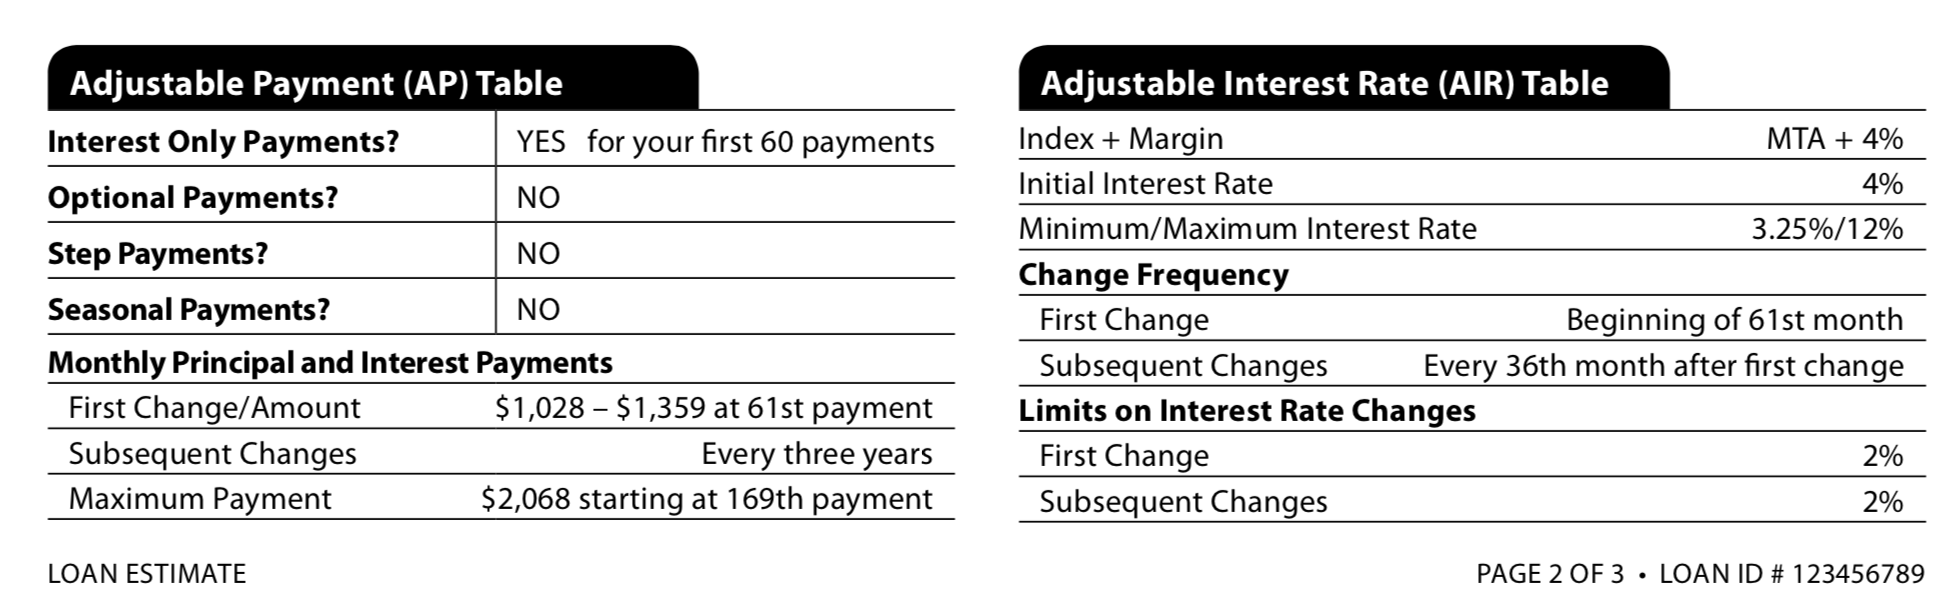 Loan Estimate Page 2 >> Types Of Arm Loan Rate Caps Initial Subsequent And Lifetime